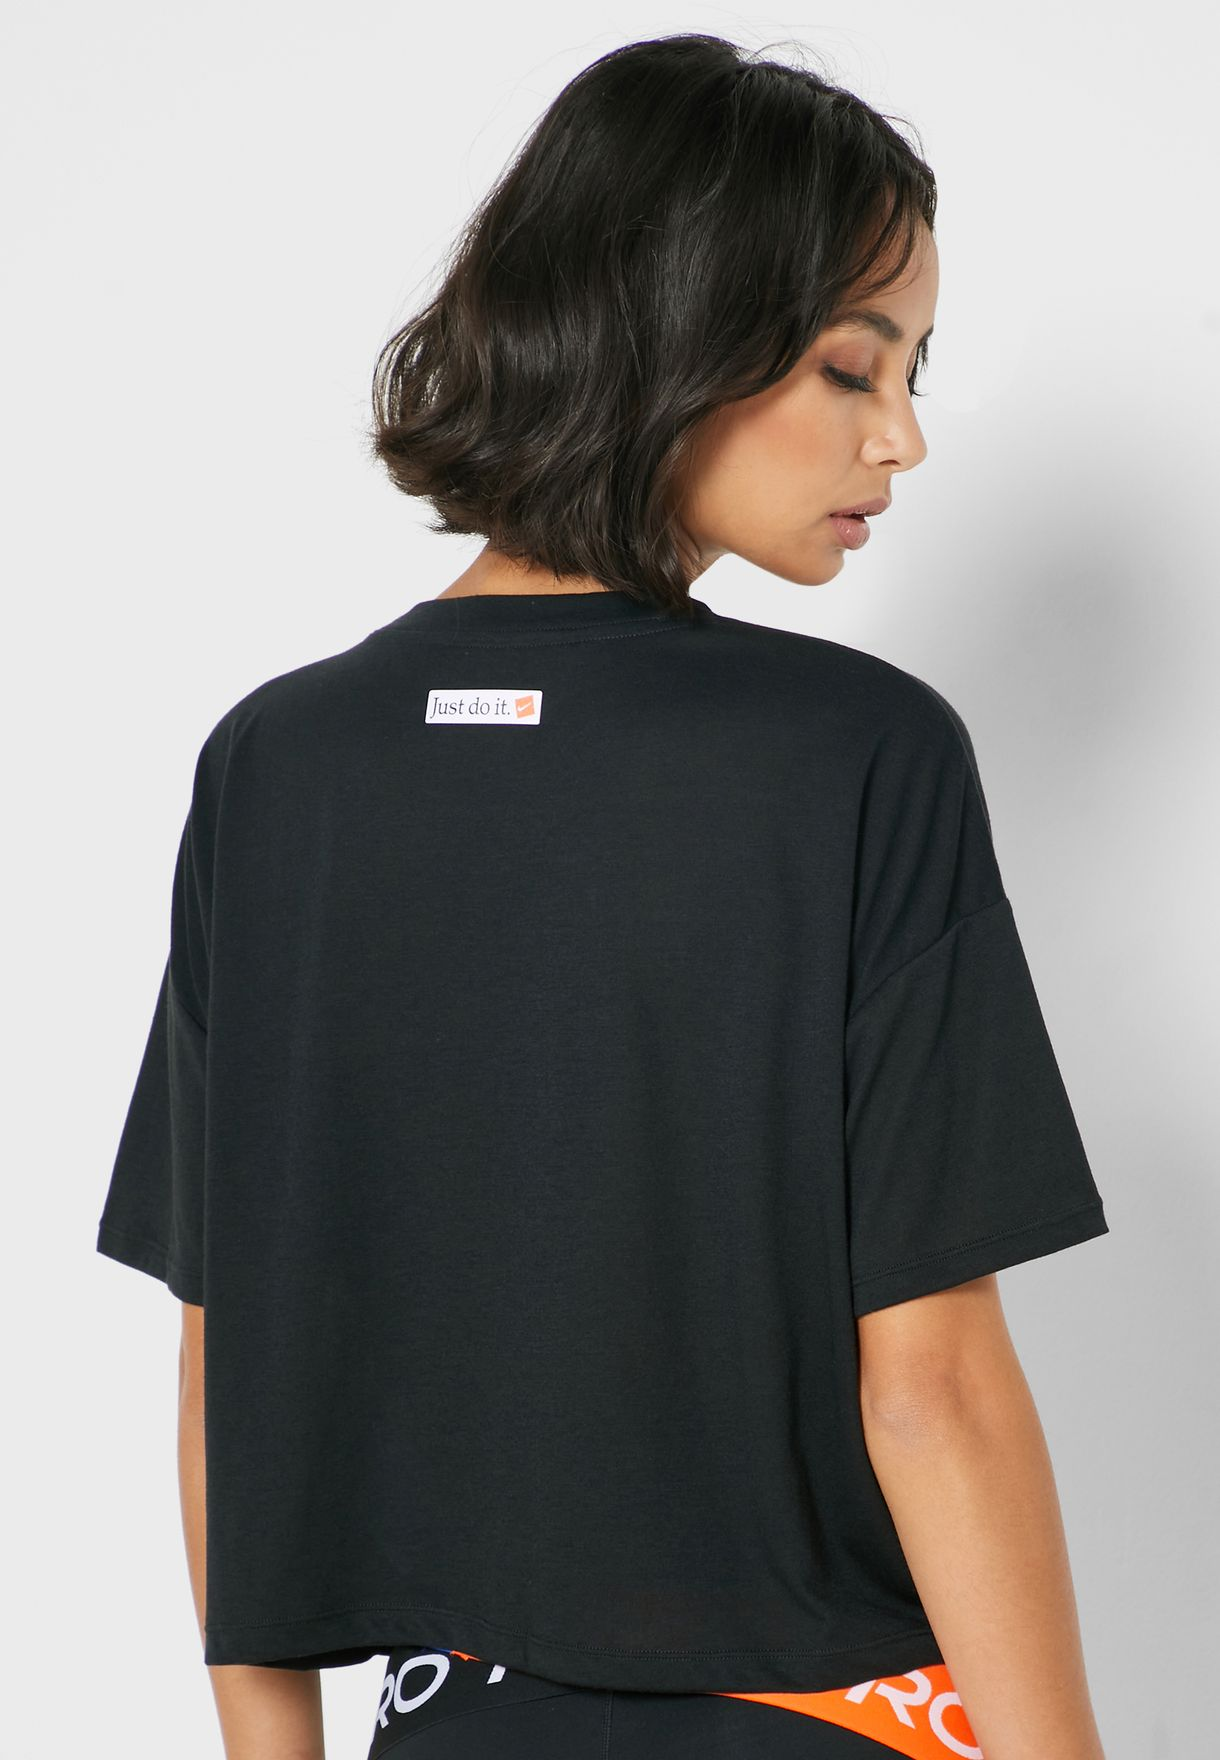 Buy Nike Black Icon Clash Graphic T-shirt For Women, Uae 72704at64zkp